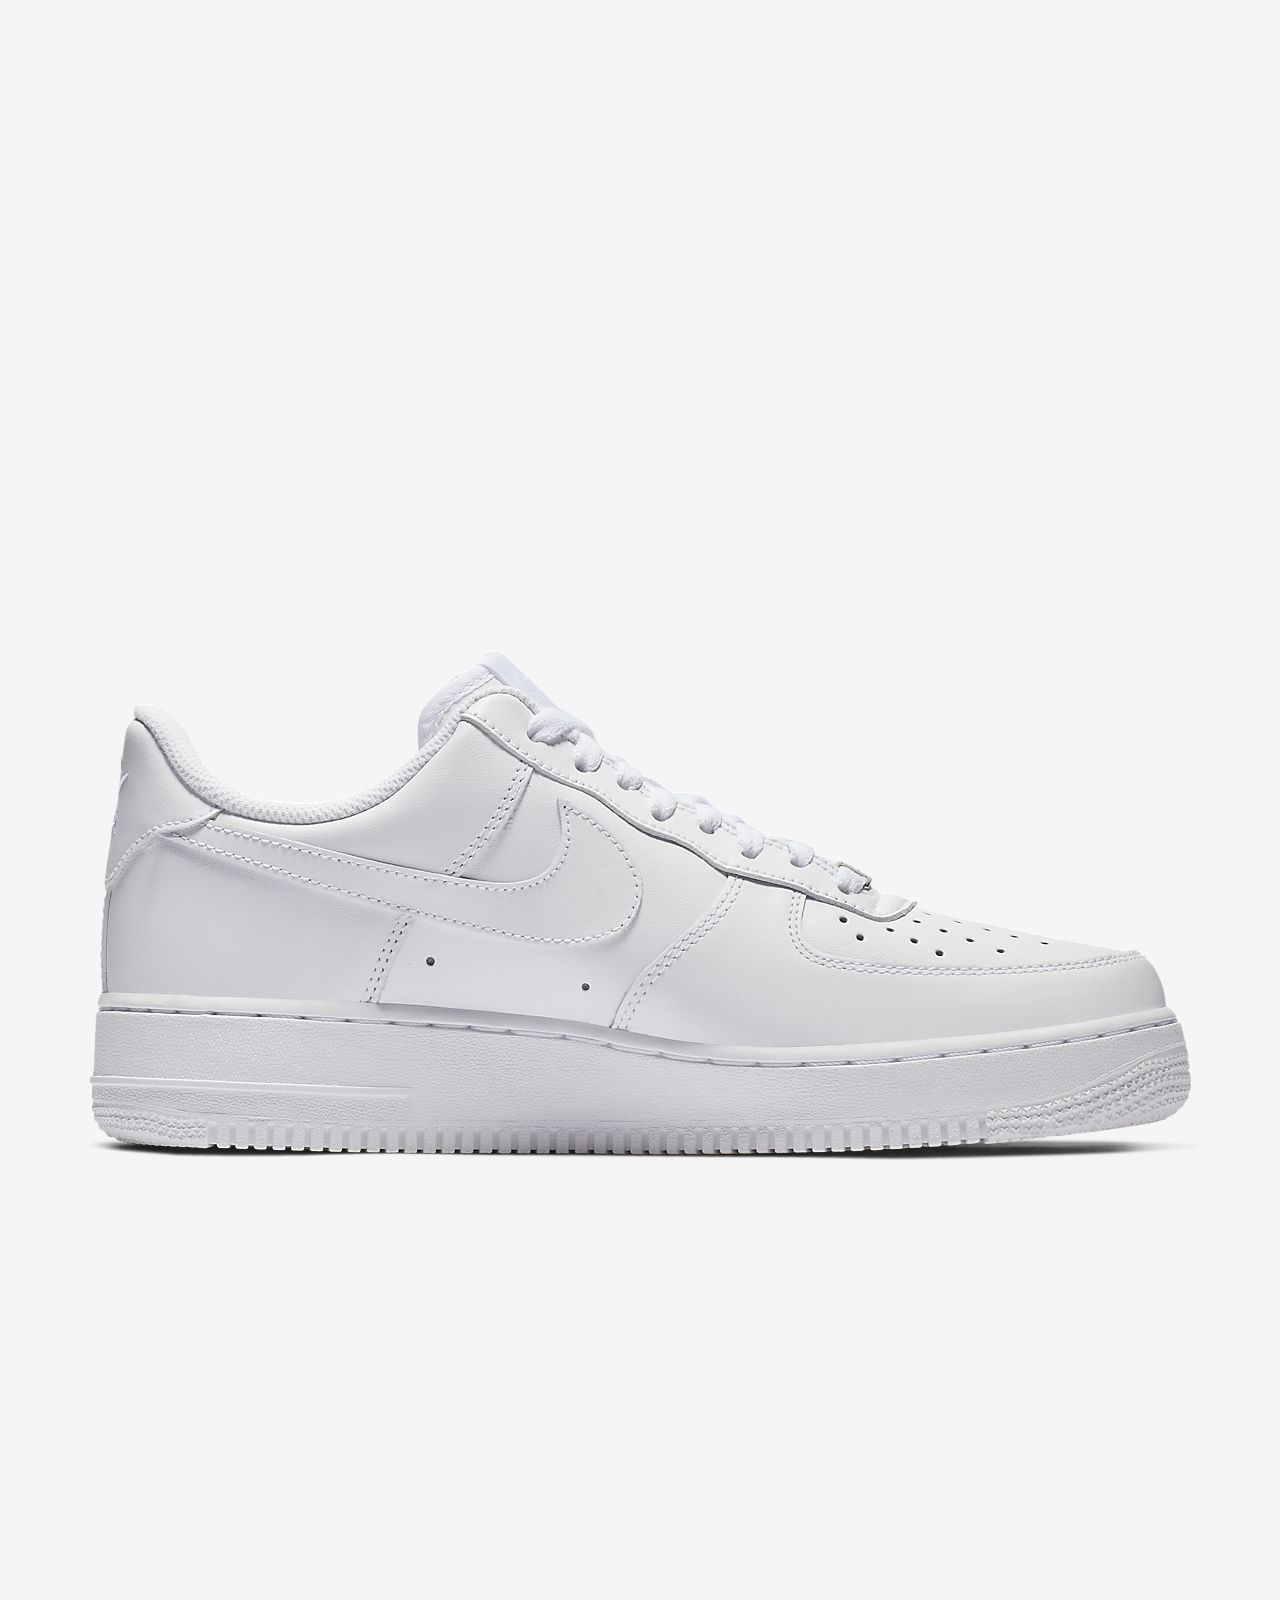 nouveau style fc3fb 3cc80 Nike Air Force 1 '07 Women's Shoe